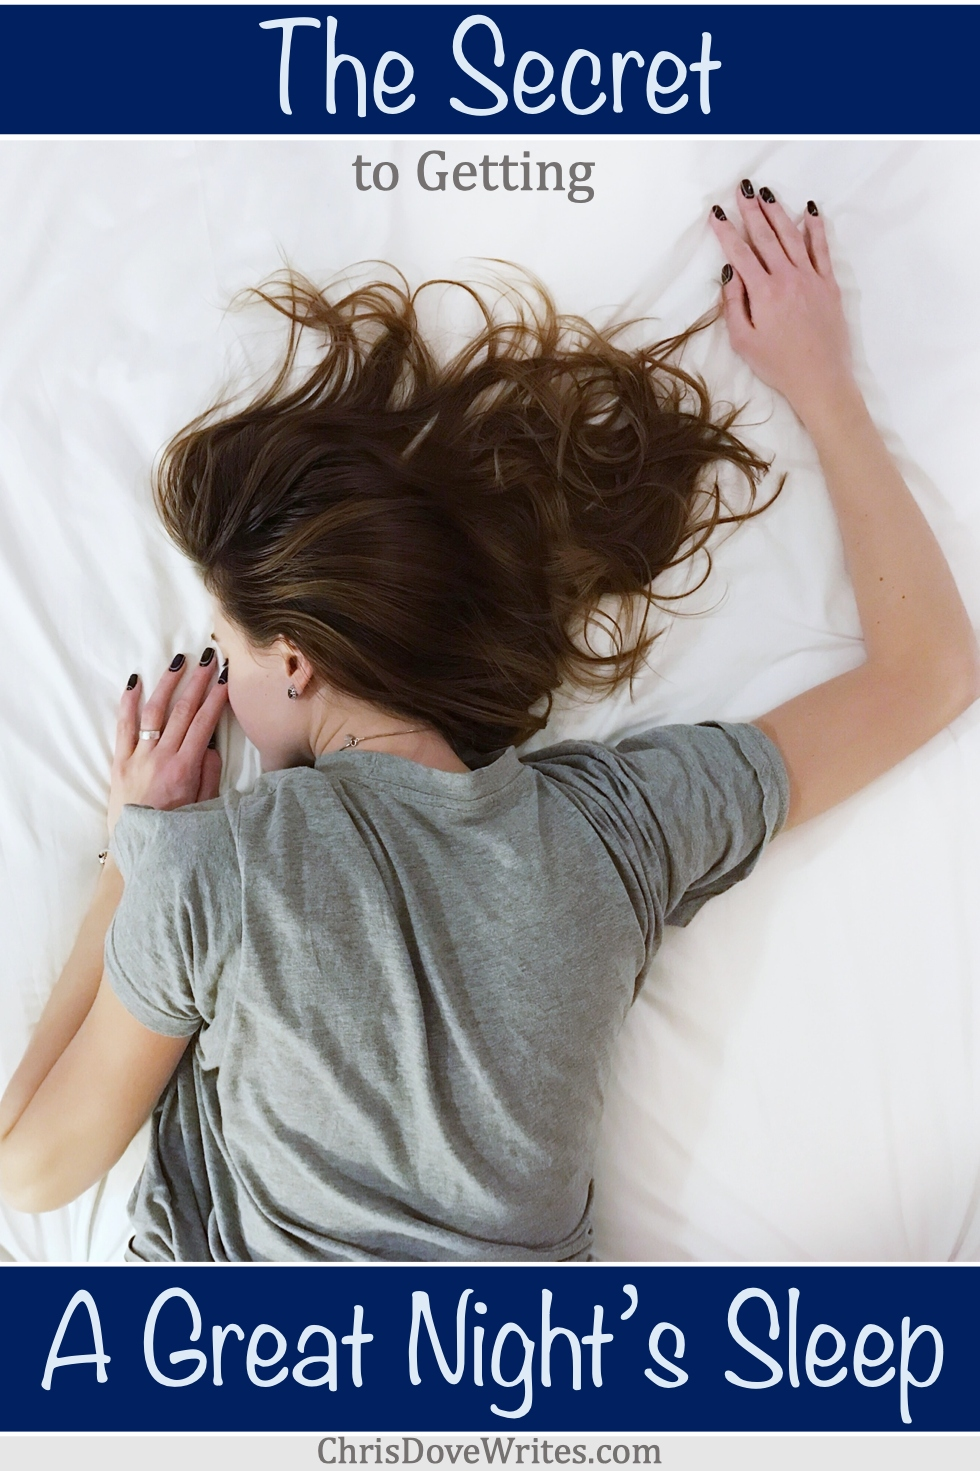 There are simple ways to improve the quality of your sleep